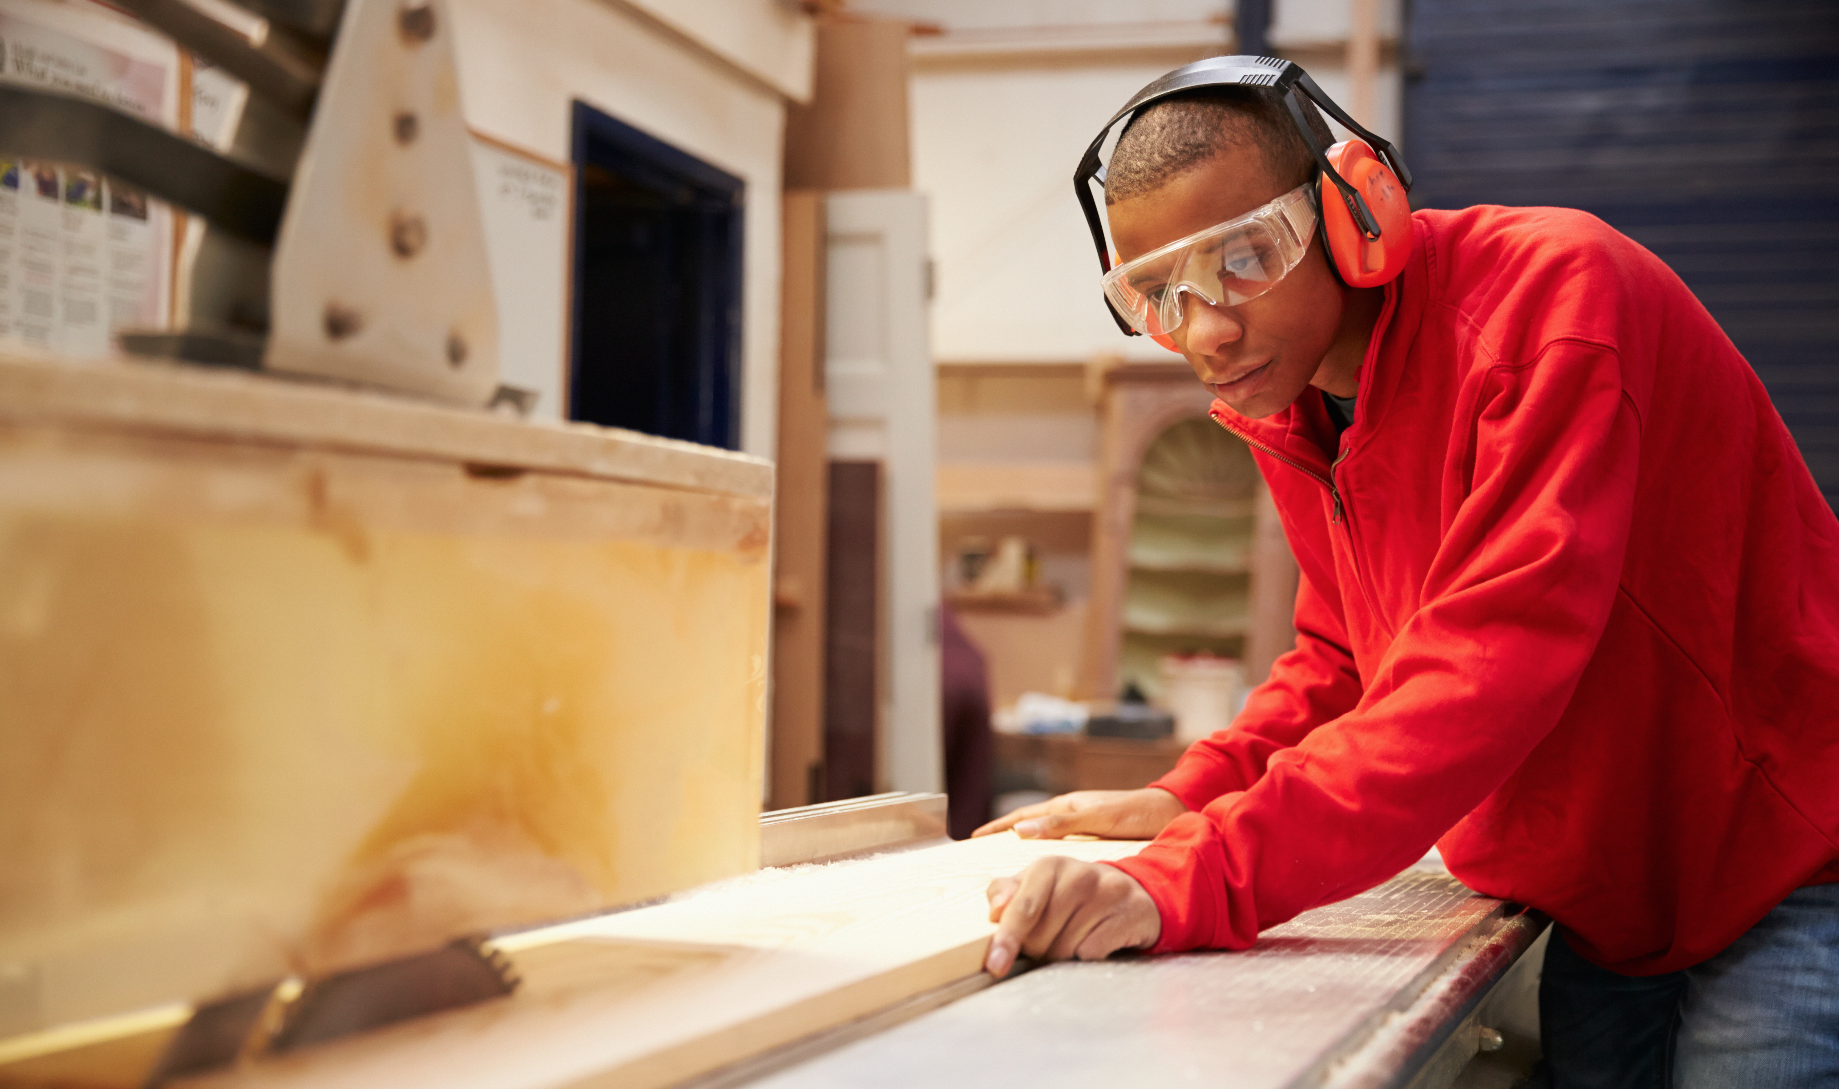 Man working in wood shop